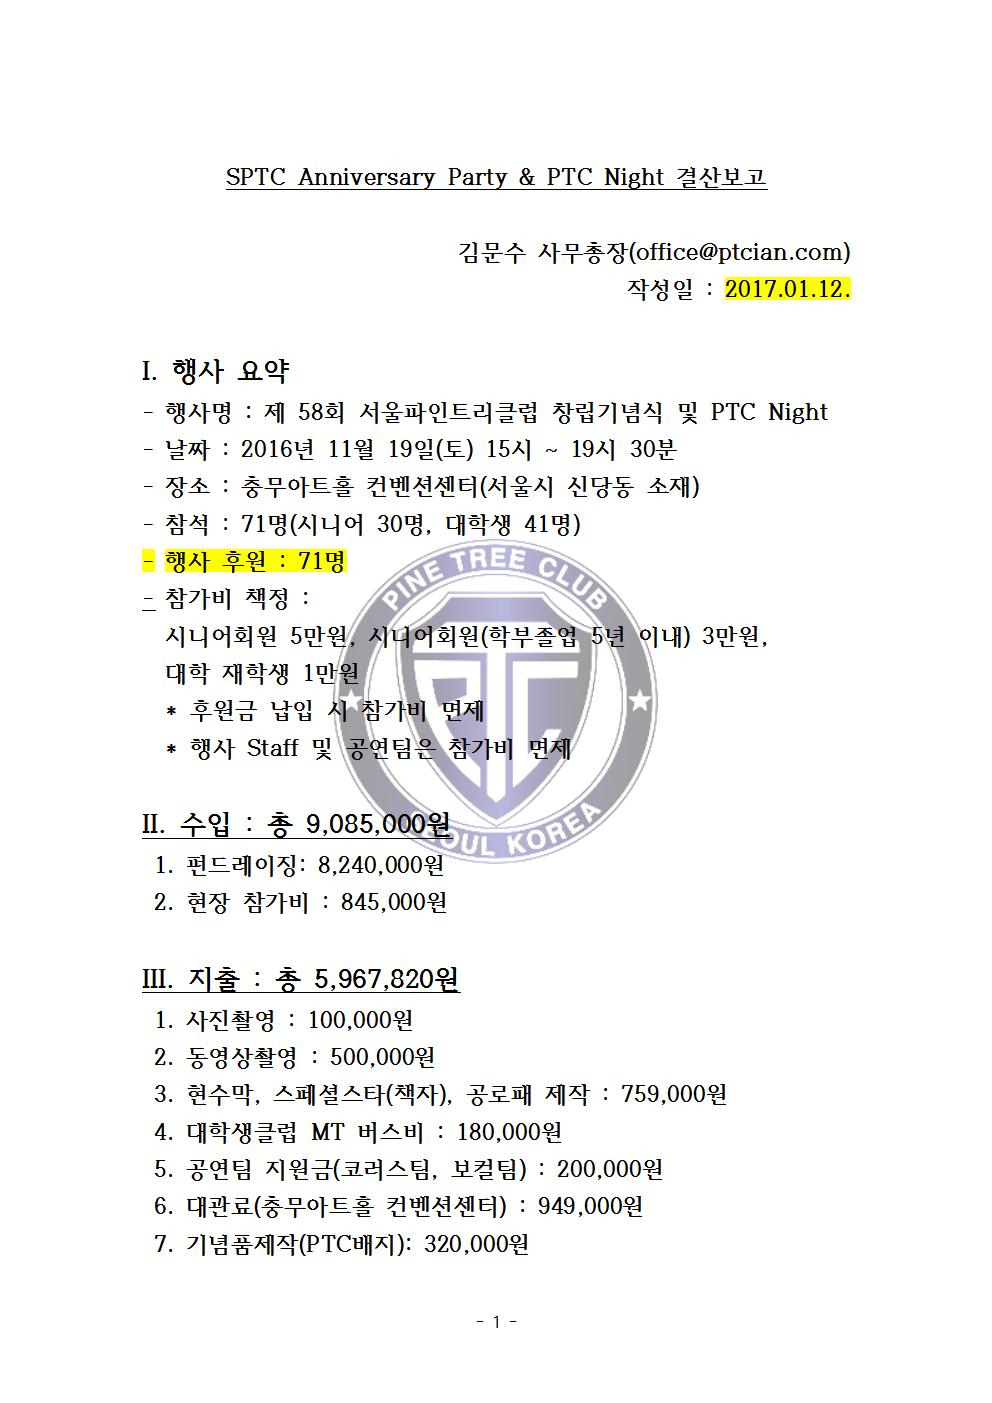 balance-sheet-58th-sptc-anniversary001.jpg